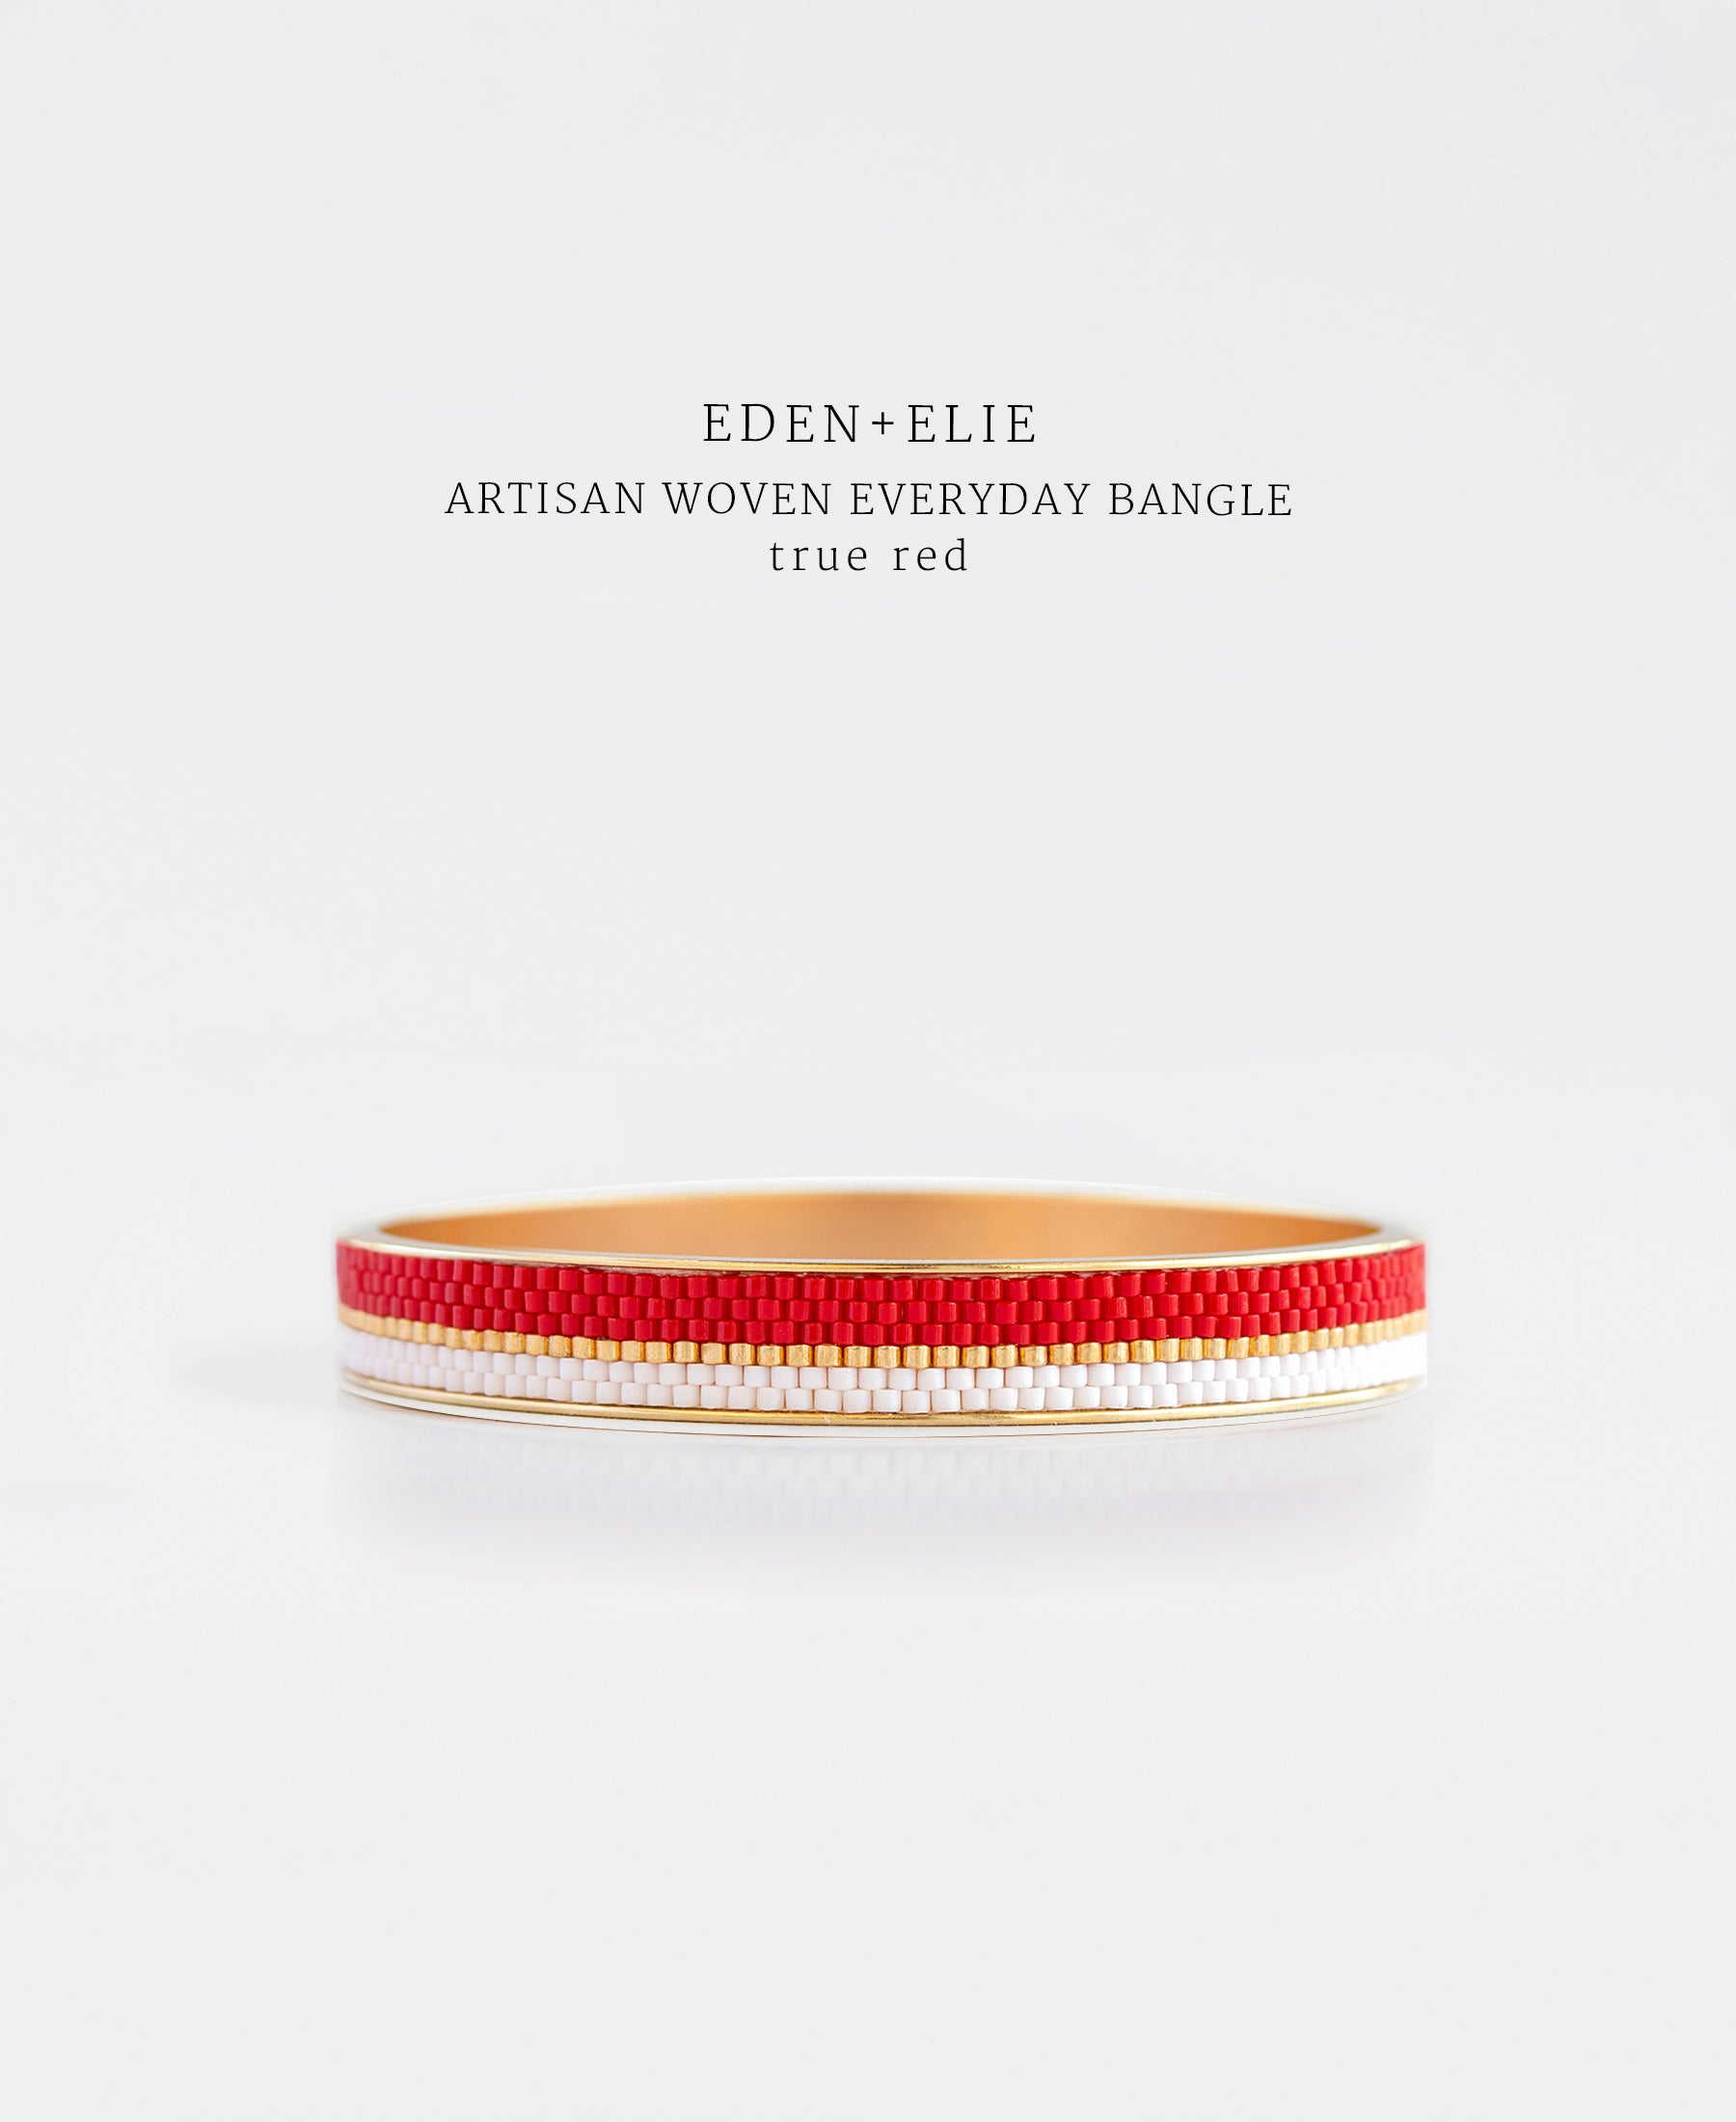 EDEN + ELIE gold plated jewelry Everyday gold narrow bangle - true red